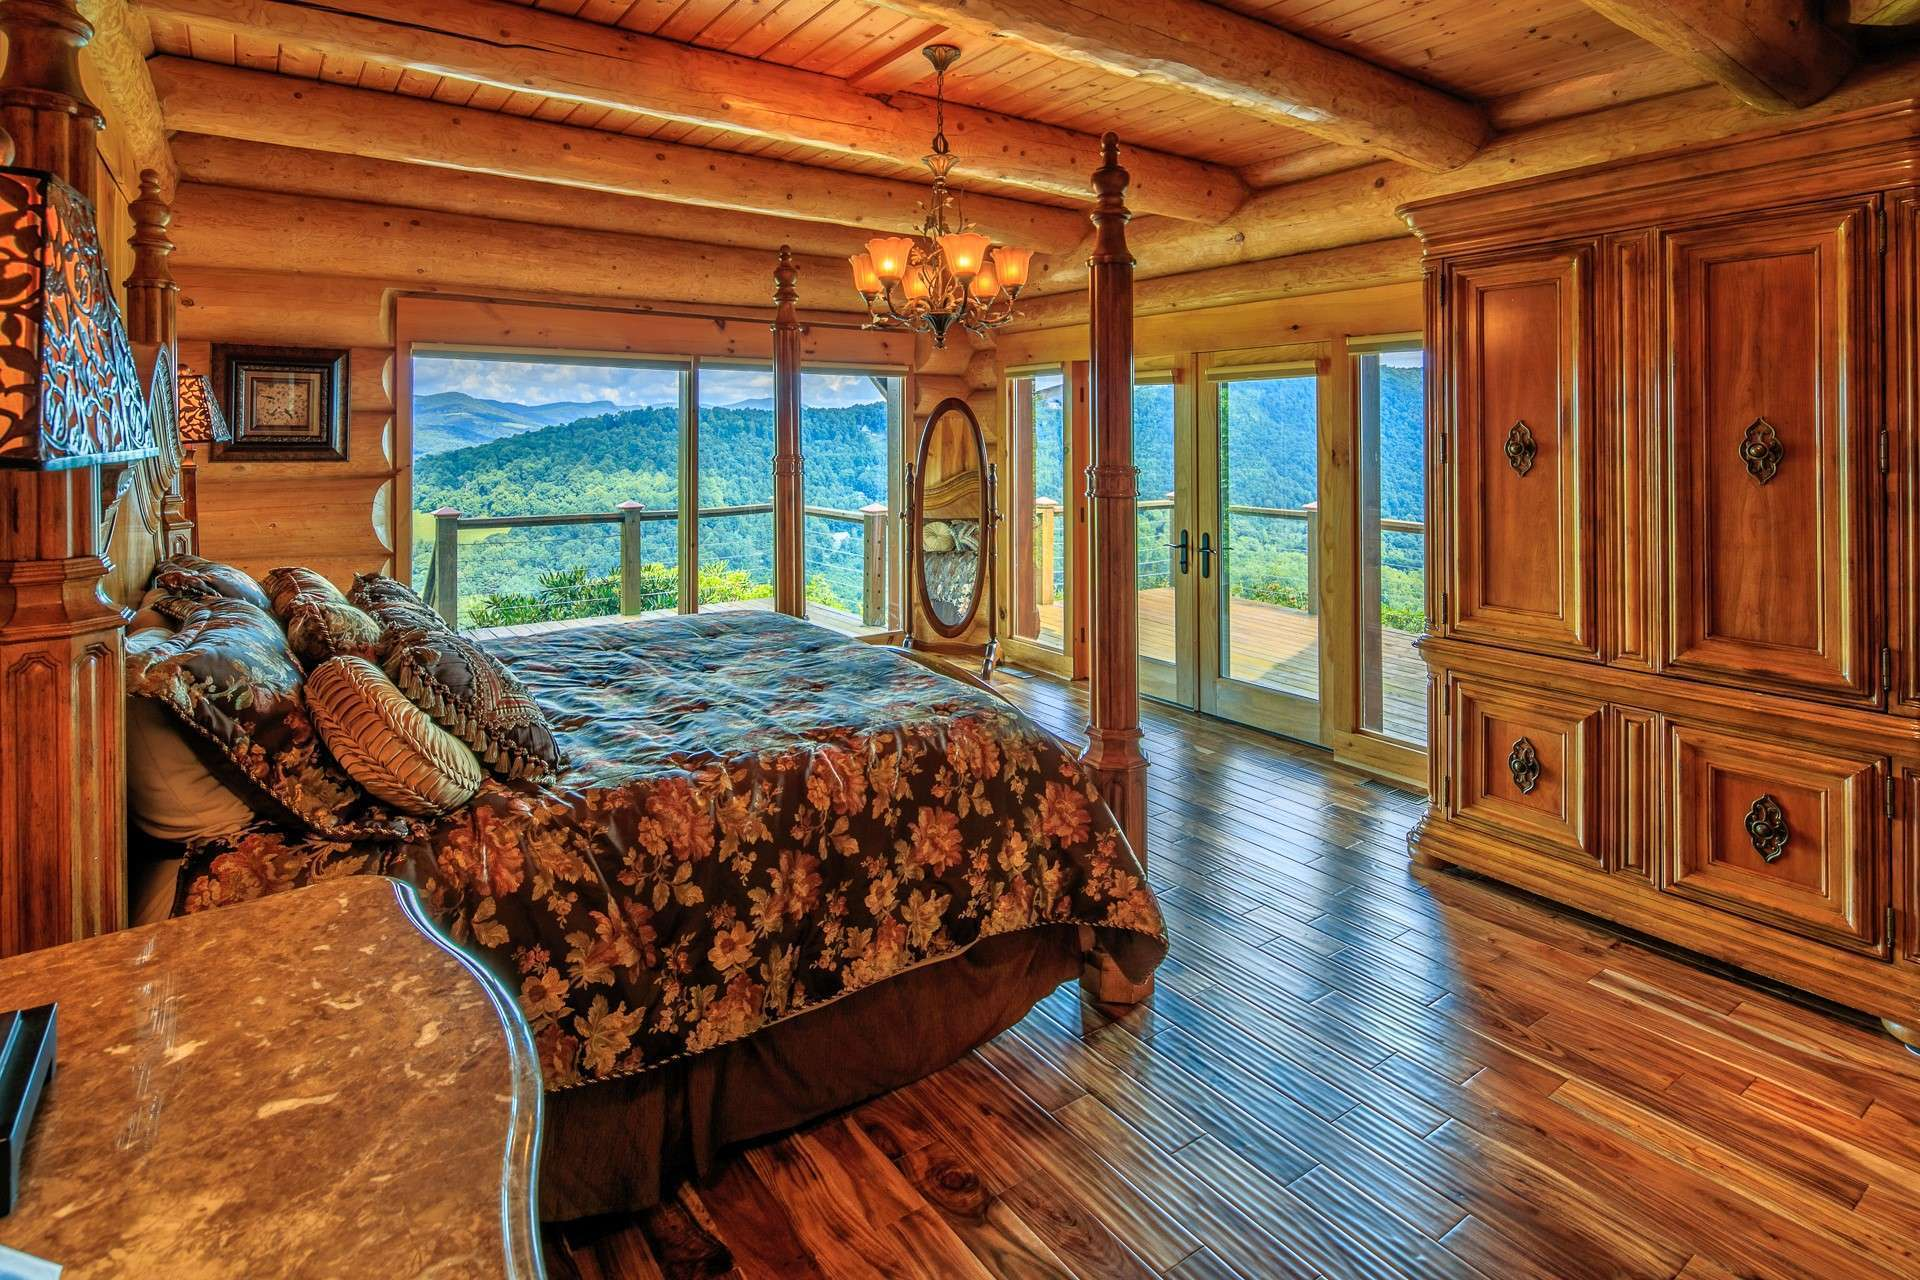 The main level owner's master suite maintains an ambiance that exudes warmth and charm. Large windows along with French doors flanked by more windows provide natural light and access to the deck, while...